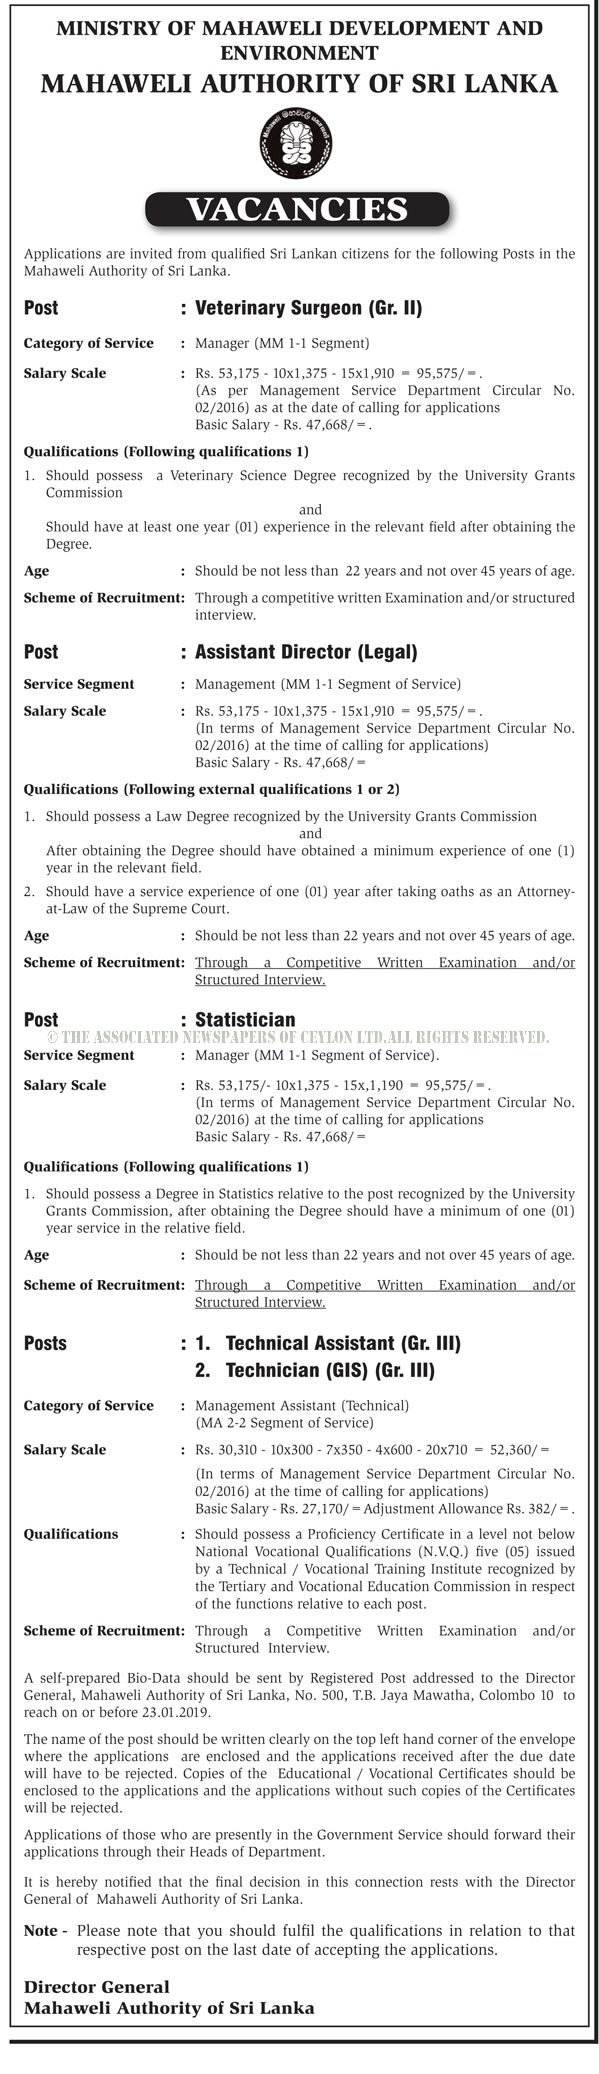 Statistician, Technical Assistant, Technician, Veterinary